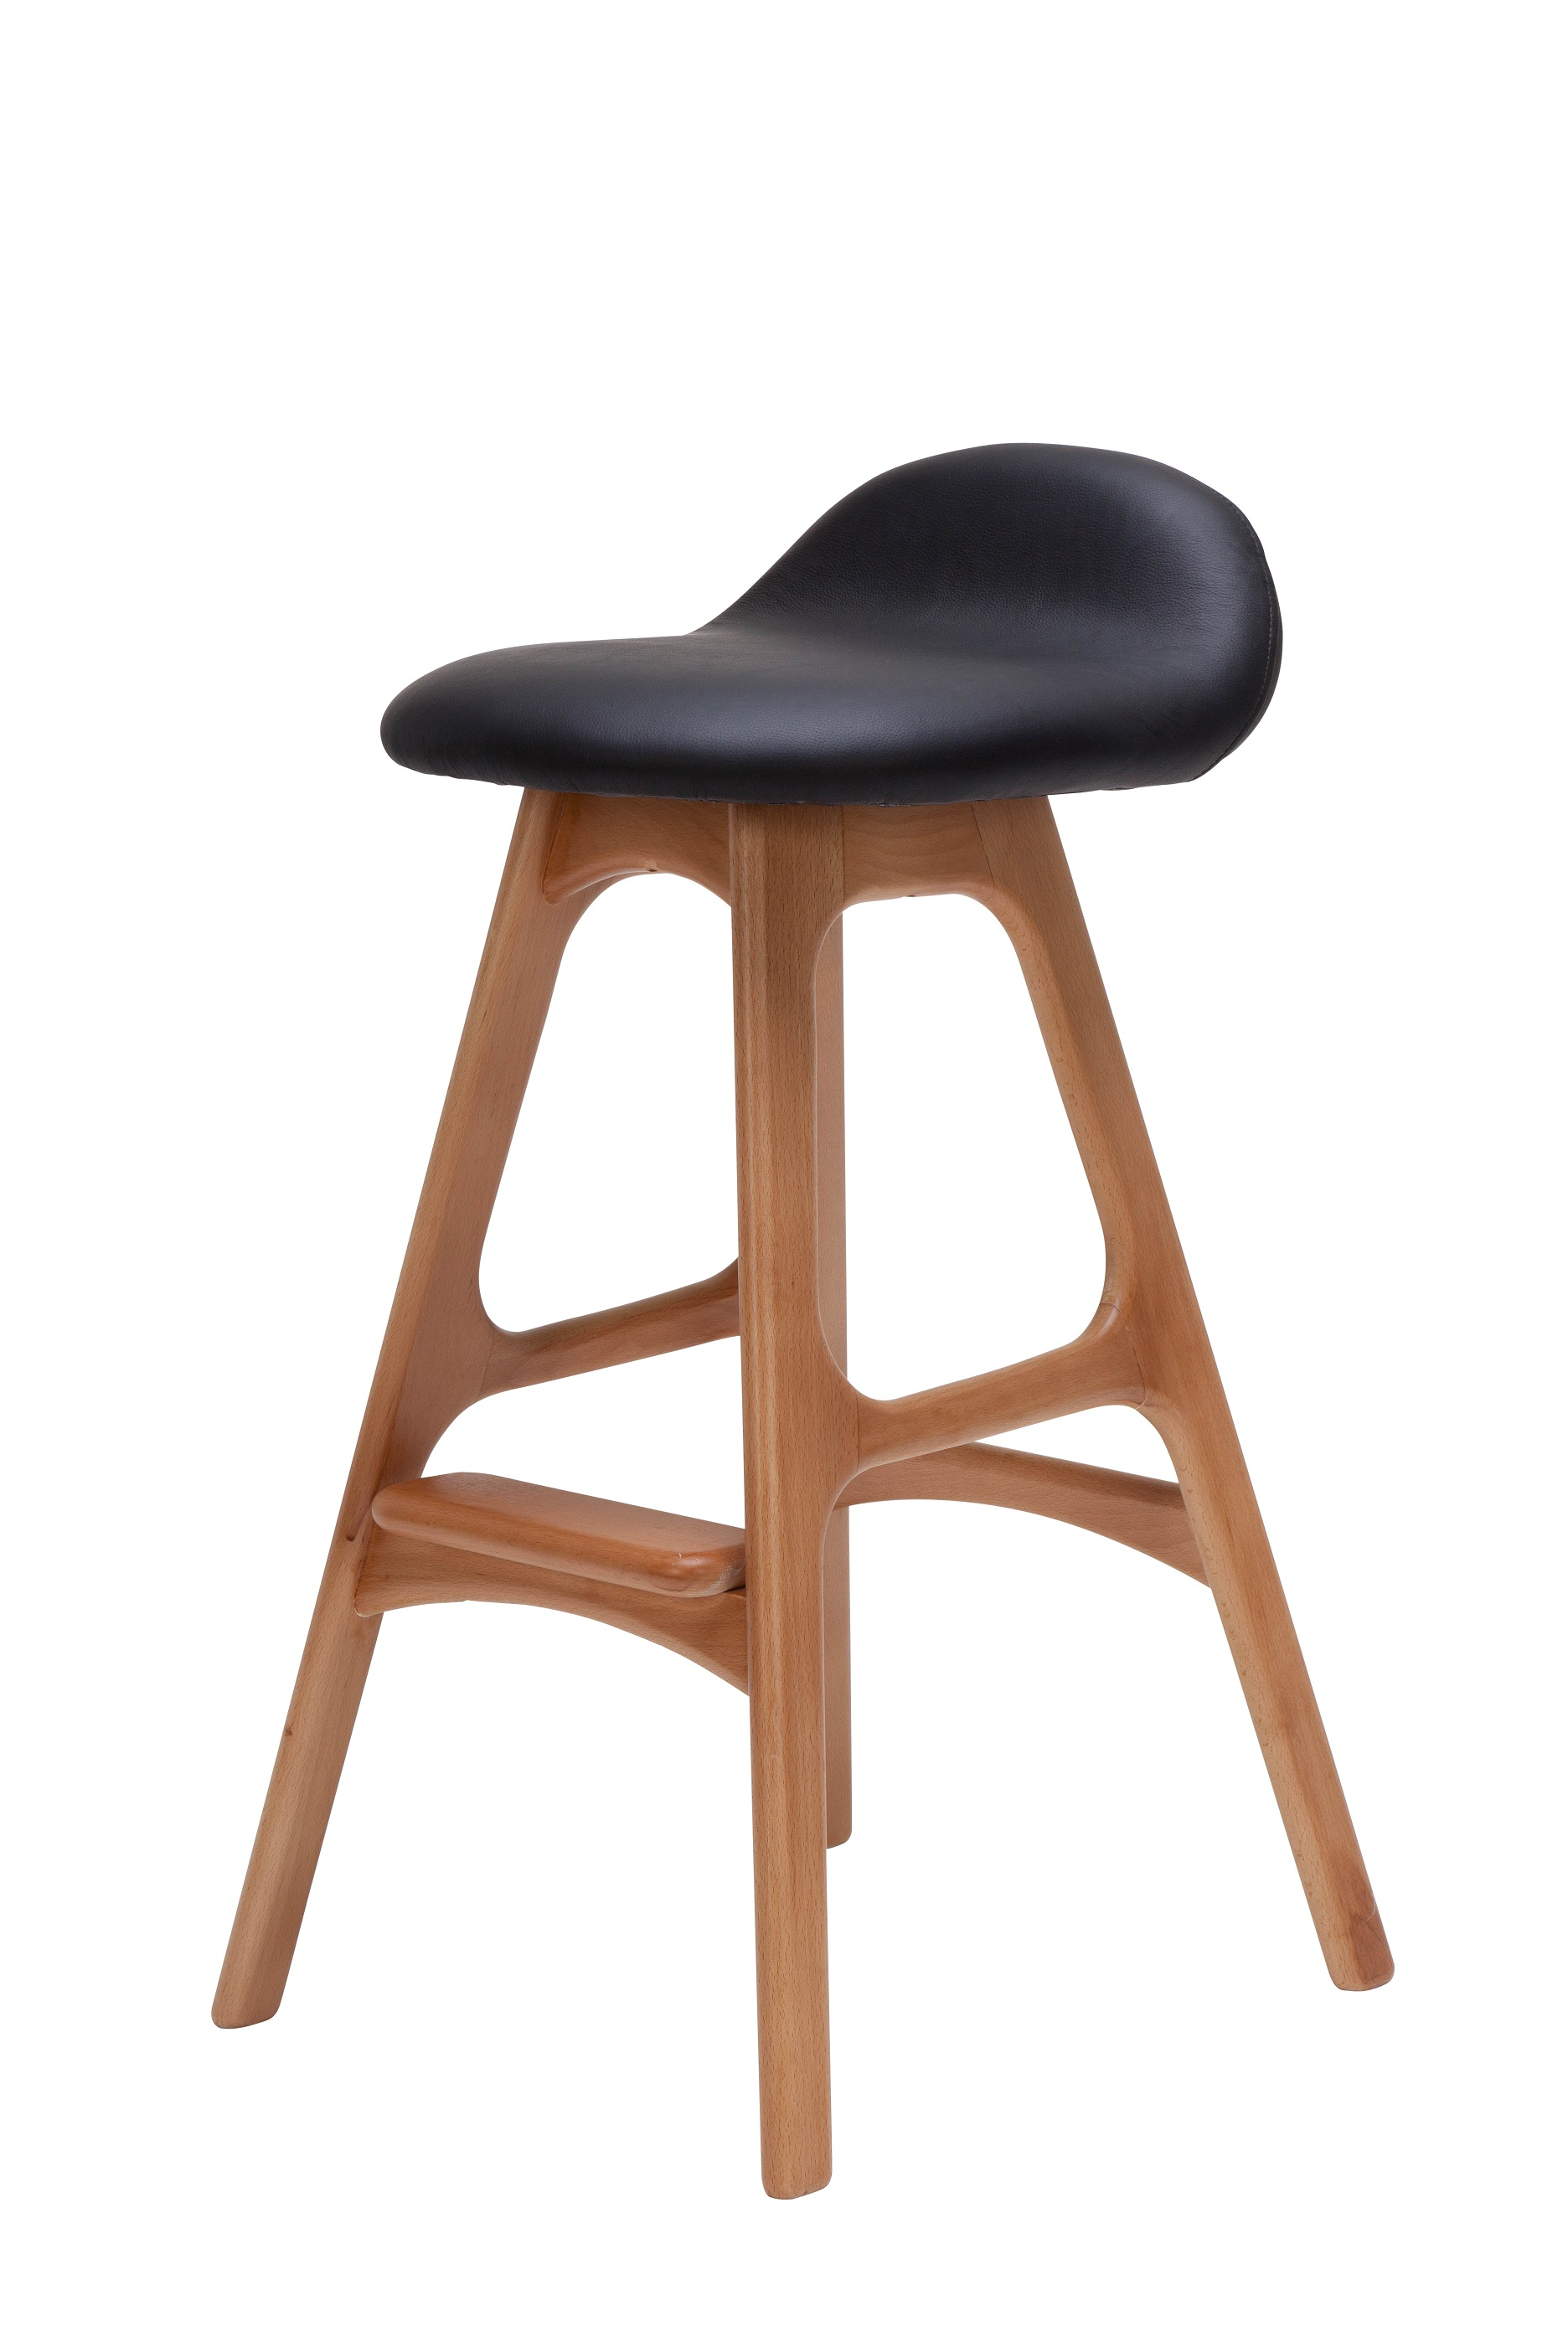 Cool Bar Stools Design Gives Perfection Meeting Urban Lifestyle